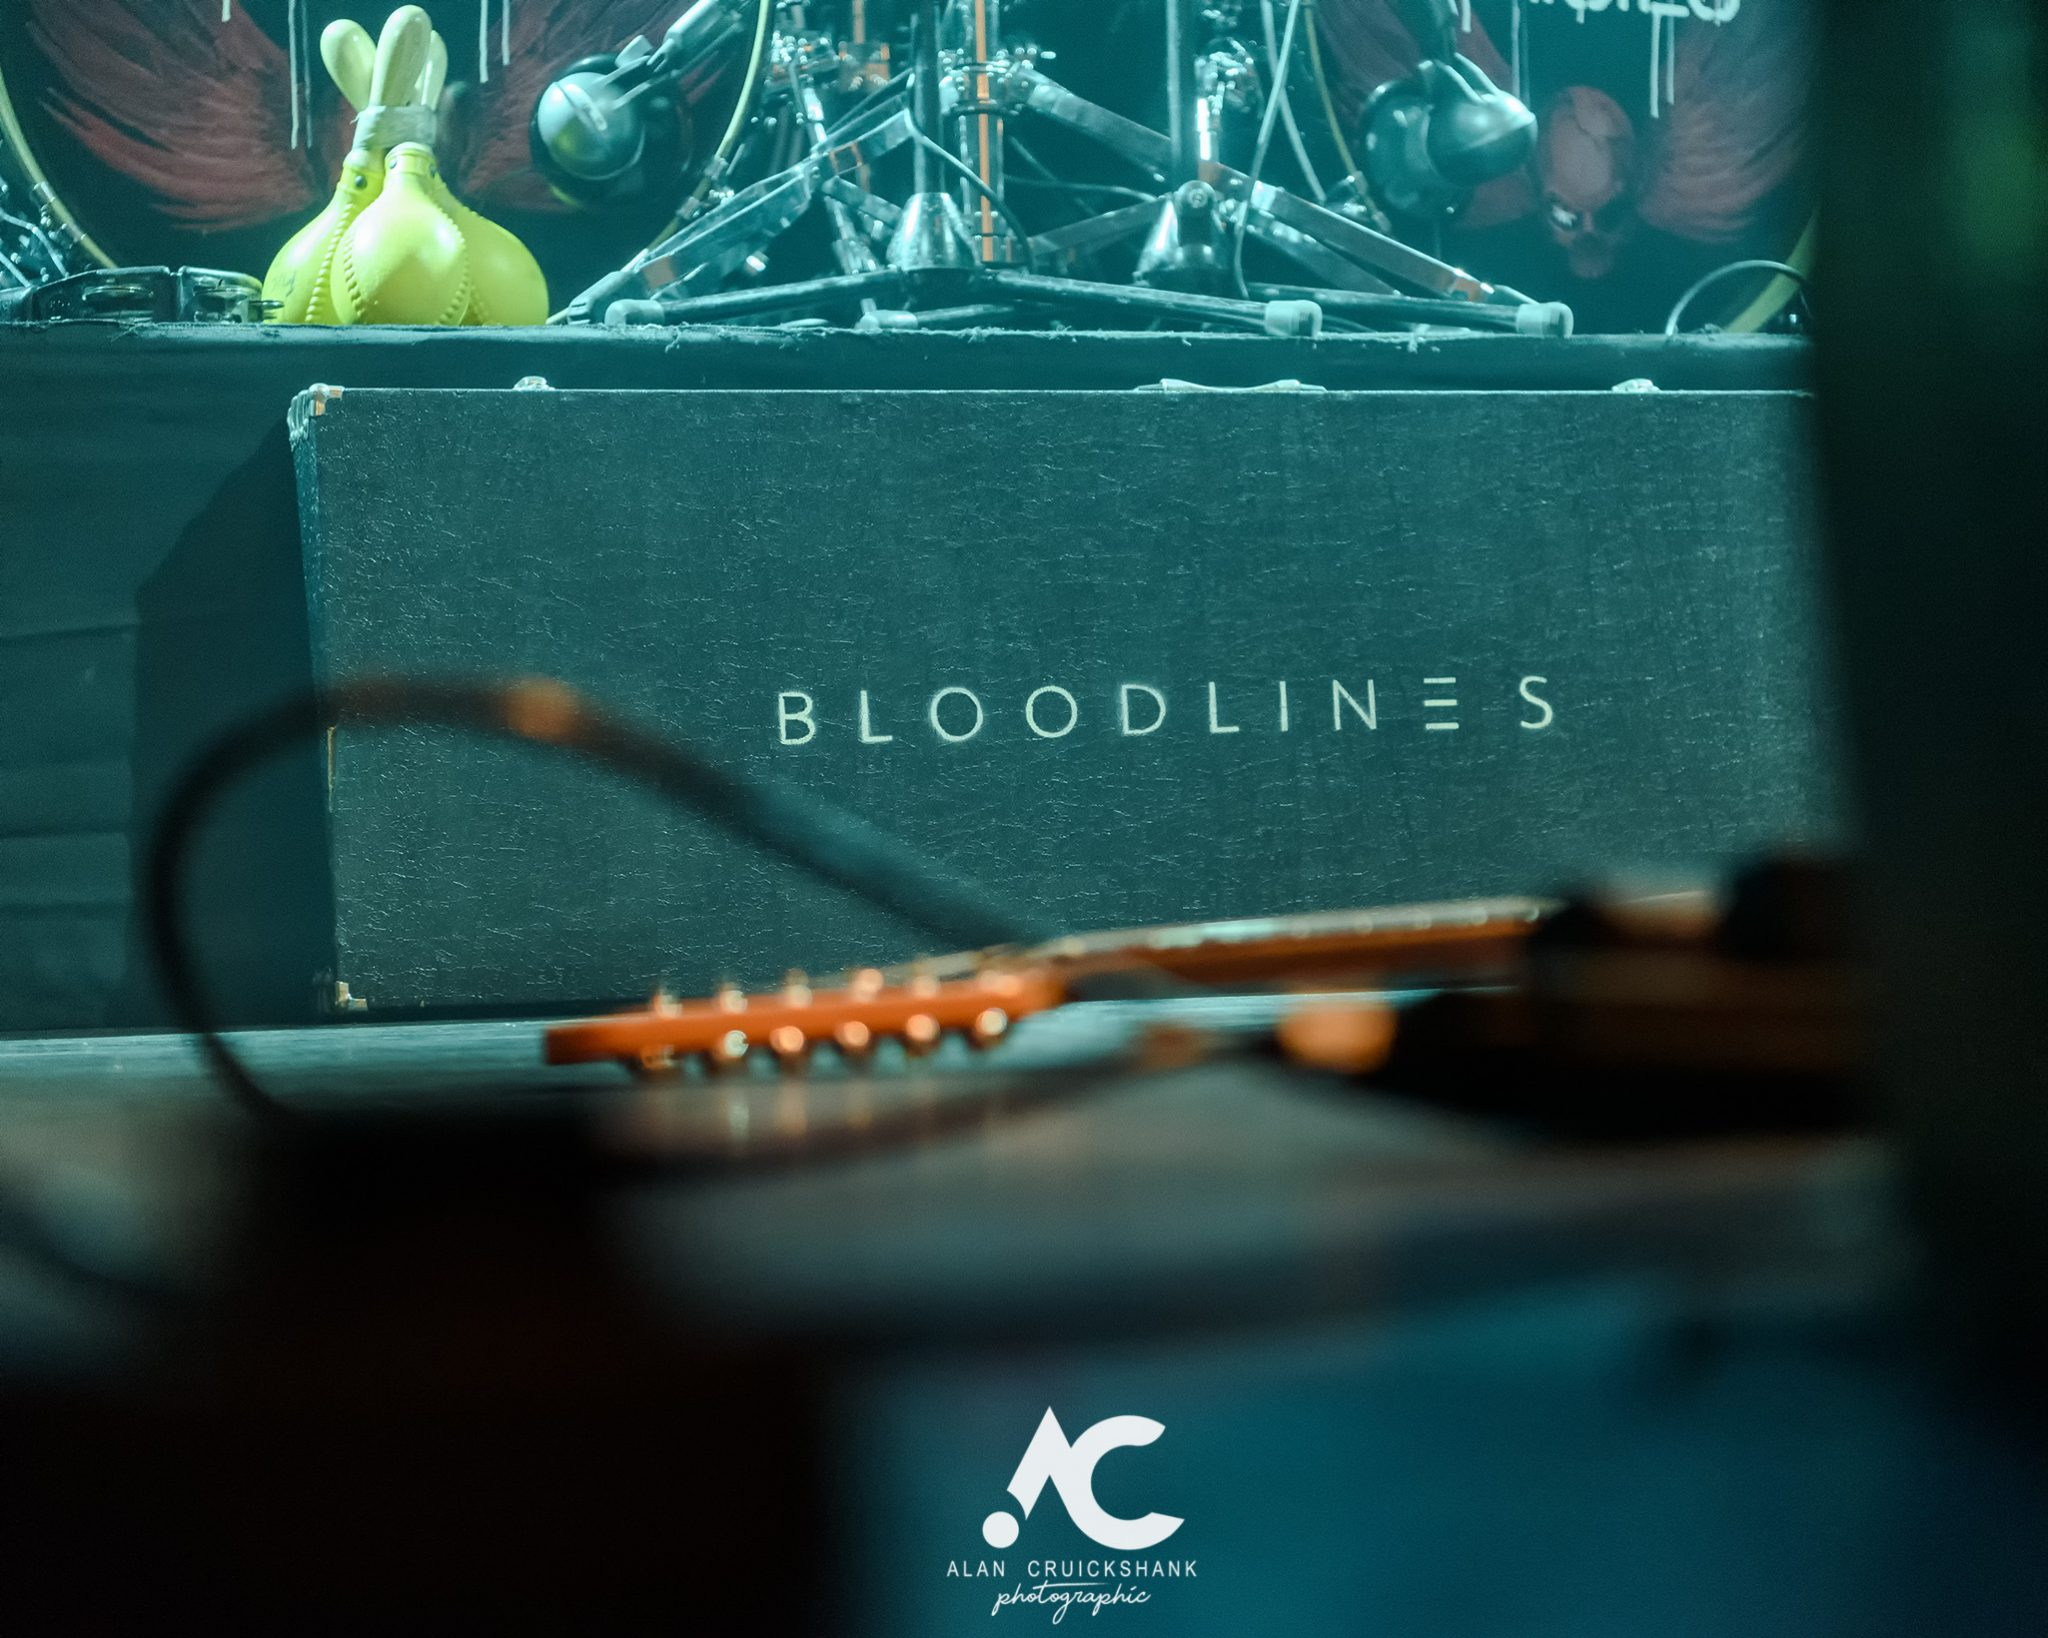 Bloodlines at Monstersfest 2018 Ironworks Inverness November 2018 6 - Monstersfest 2018 - IMAGES